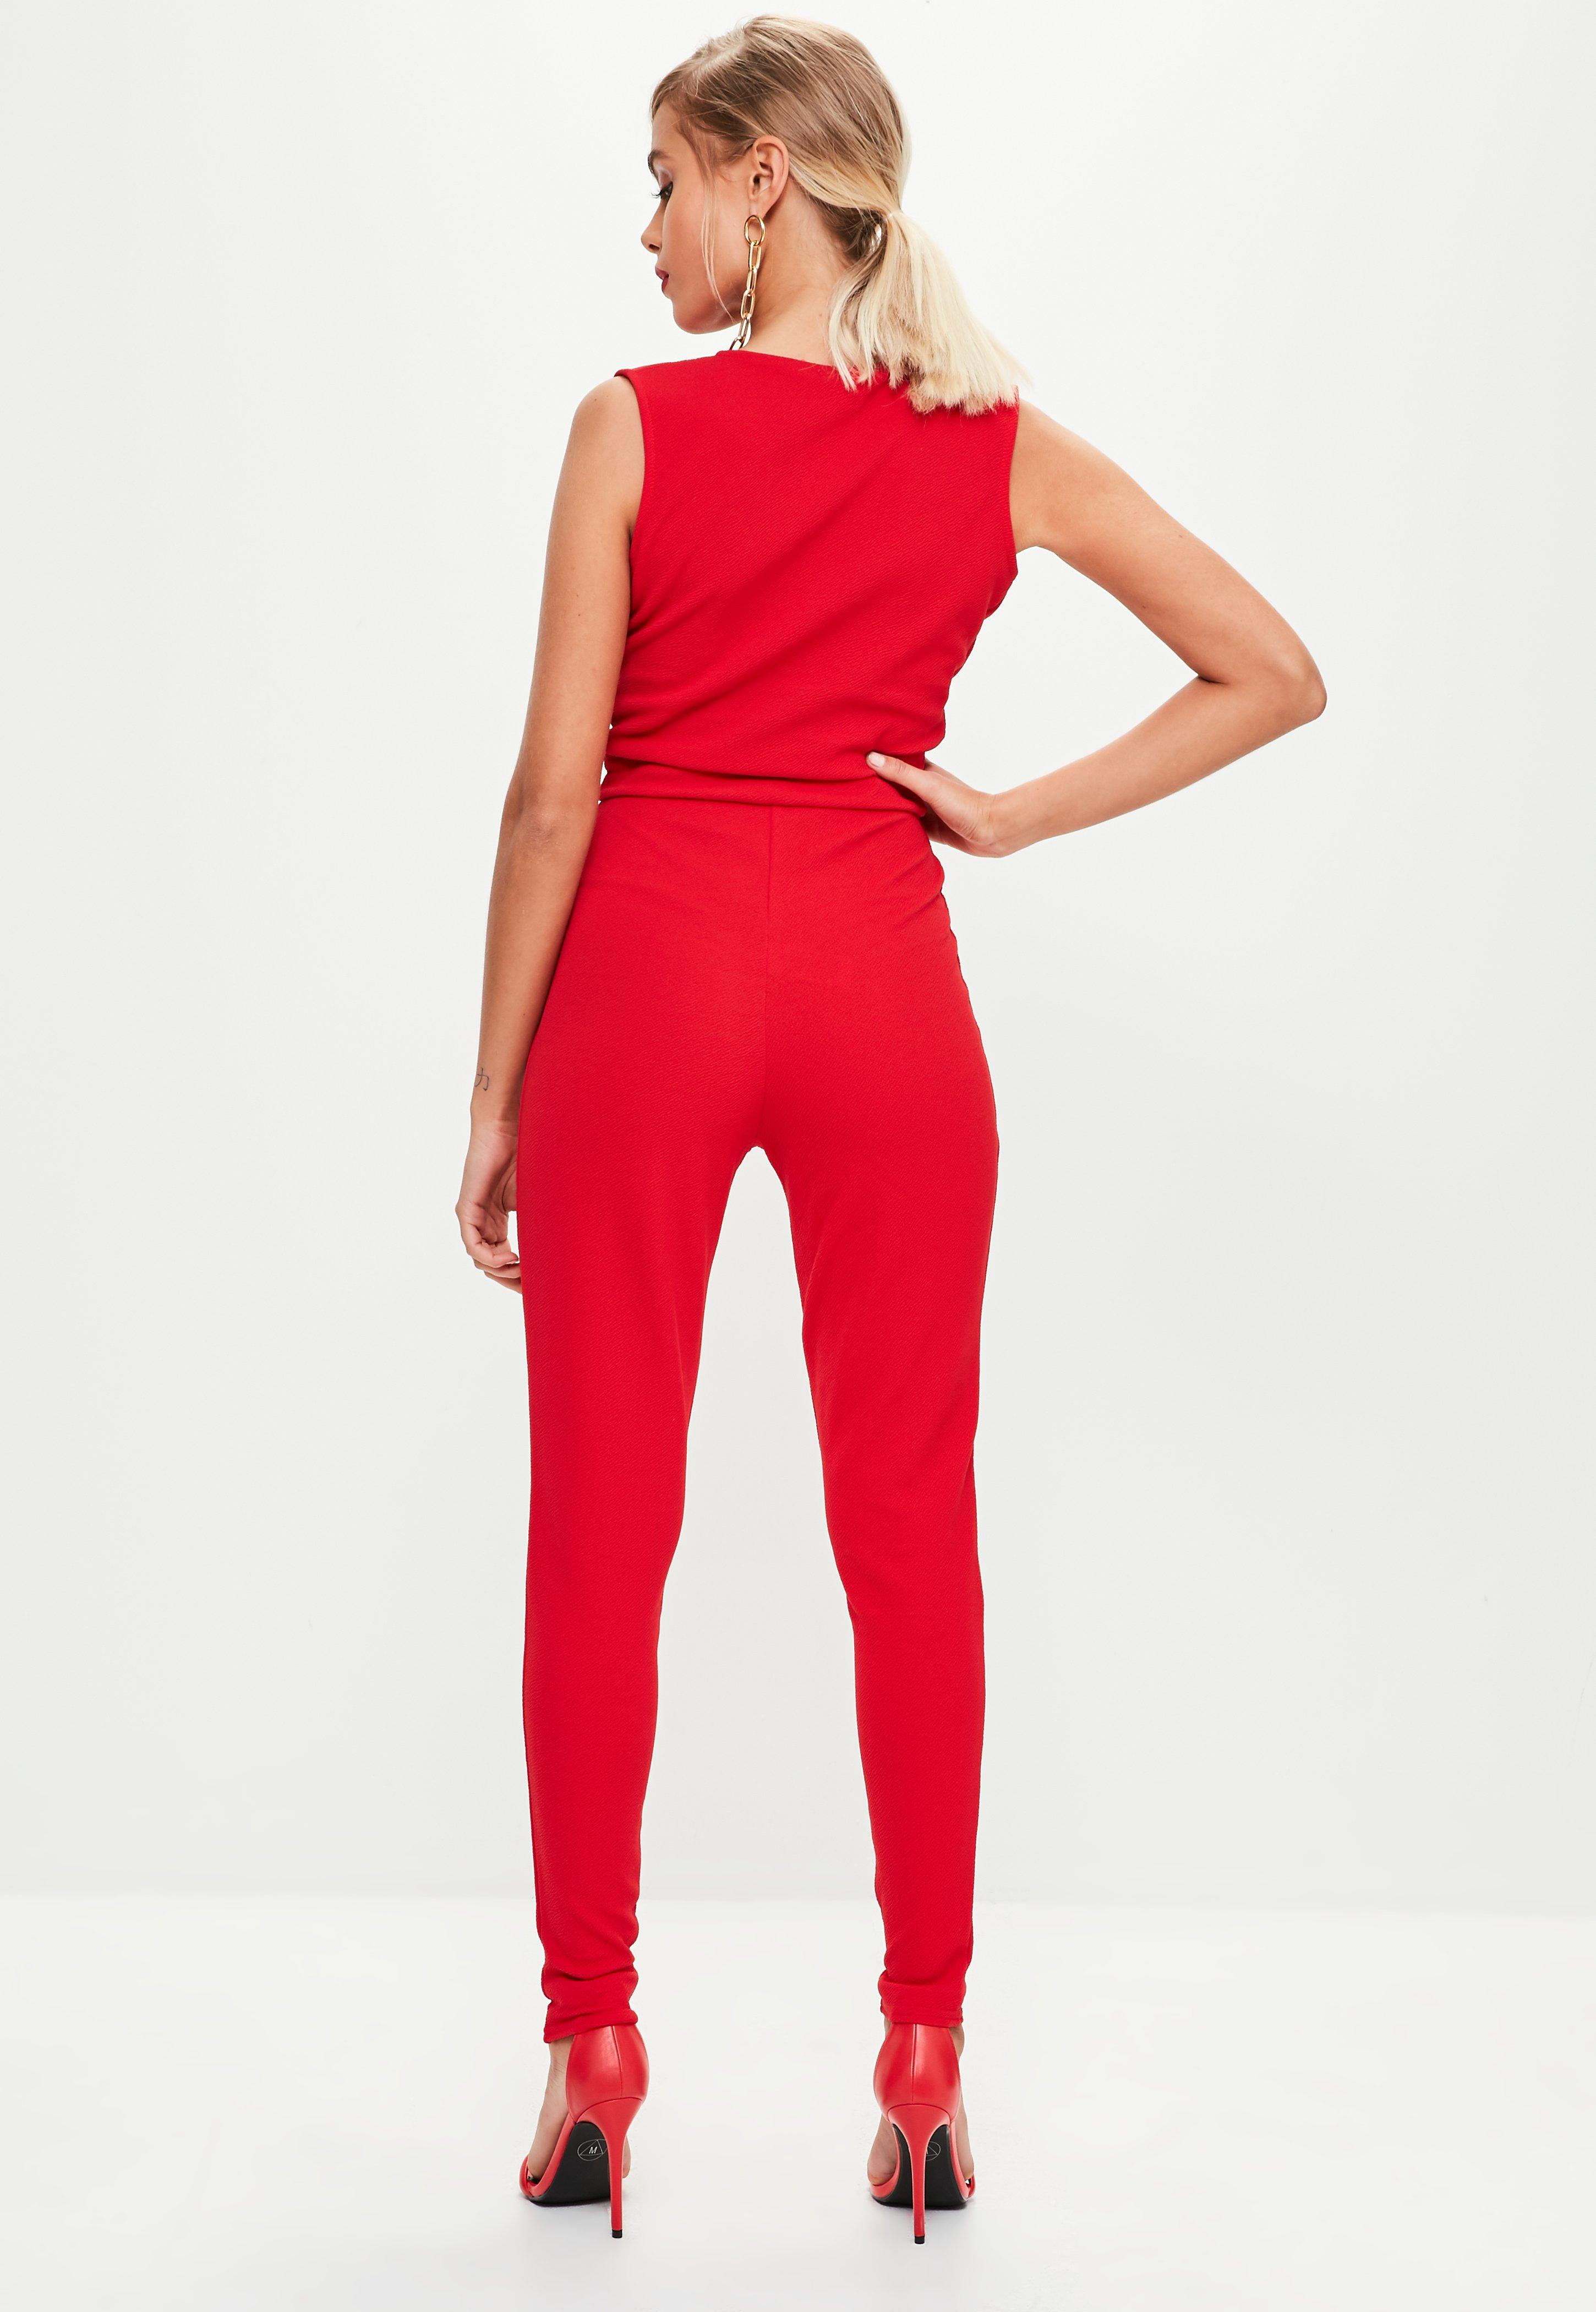 e1251442164e Lyst - Missguided Red Plunge Front Unitard Jumpsuit in Red